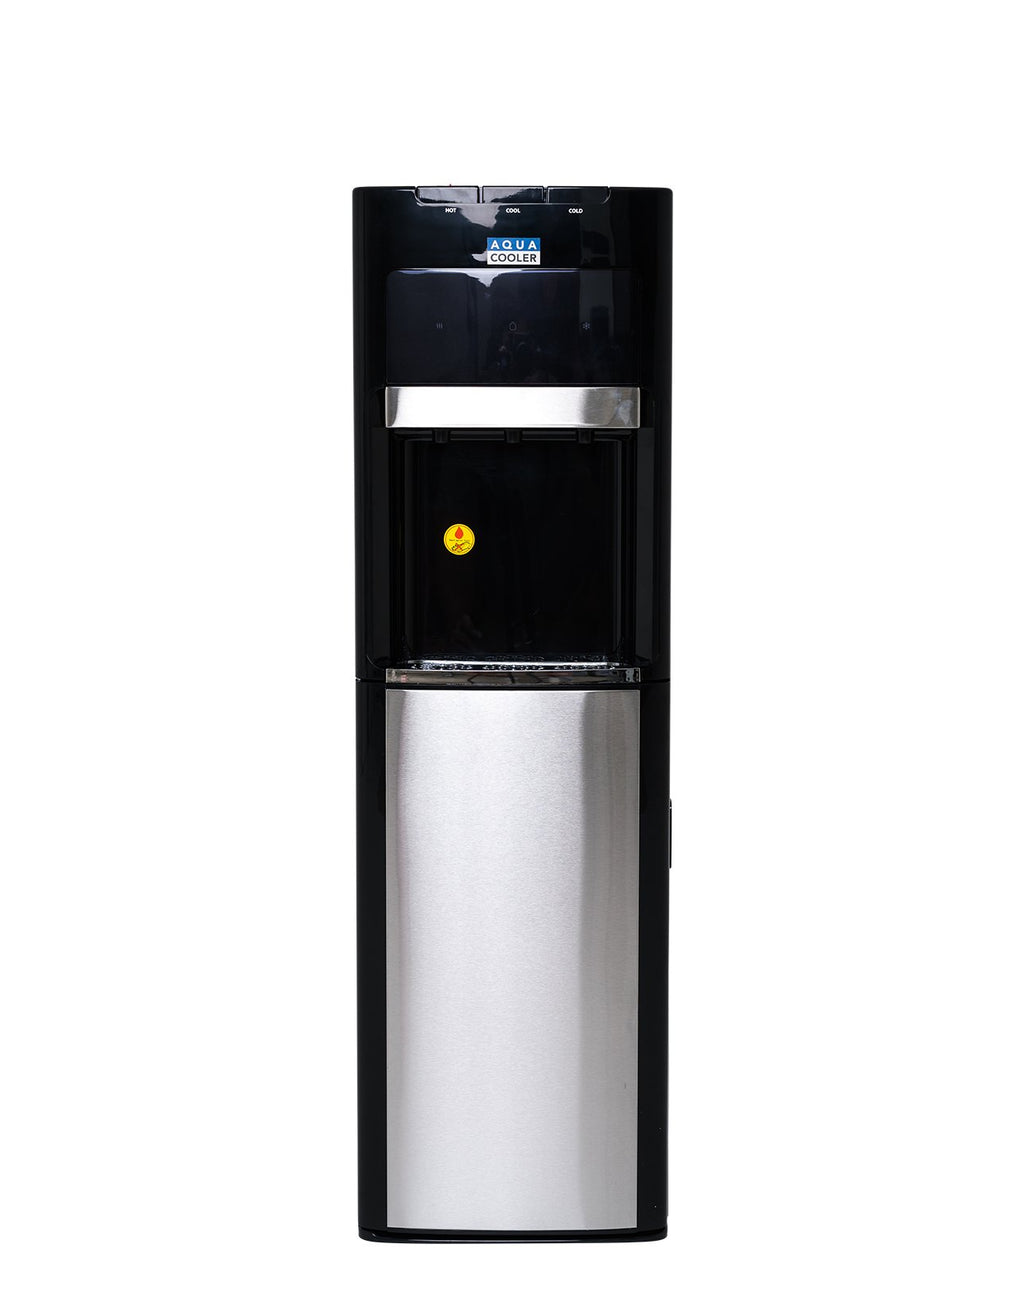 Cascade Eco Water Cooler - Hot, Cold, Ambient, with Refillable Bottle